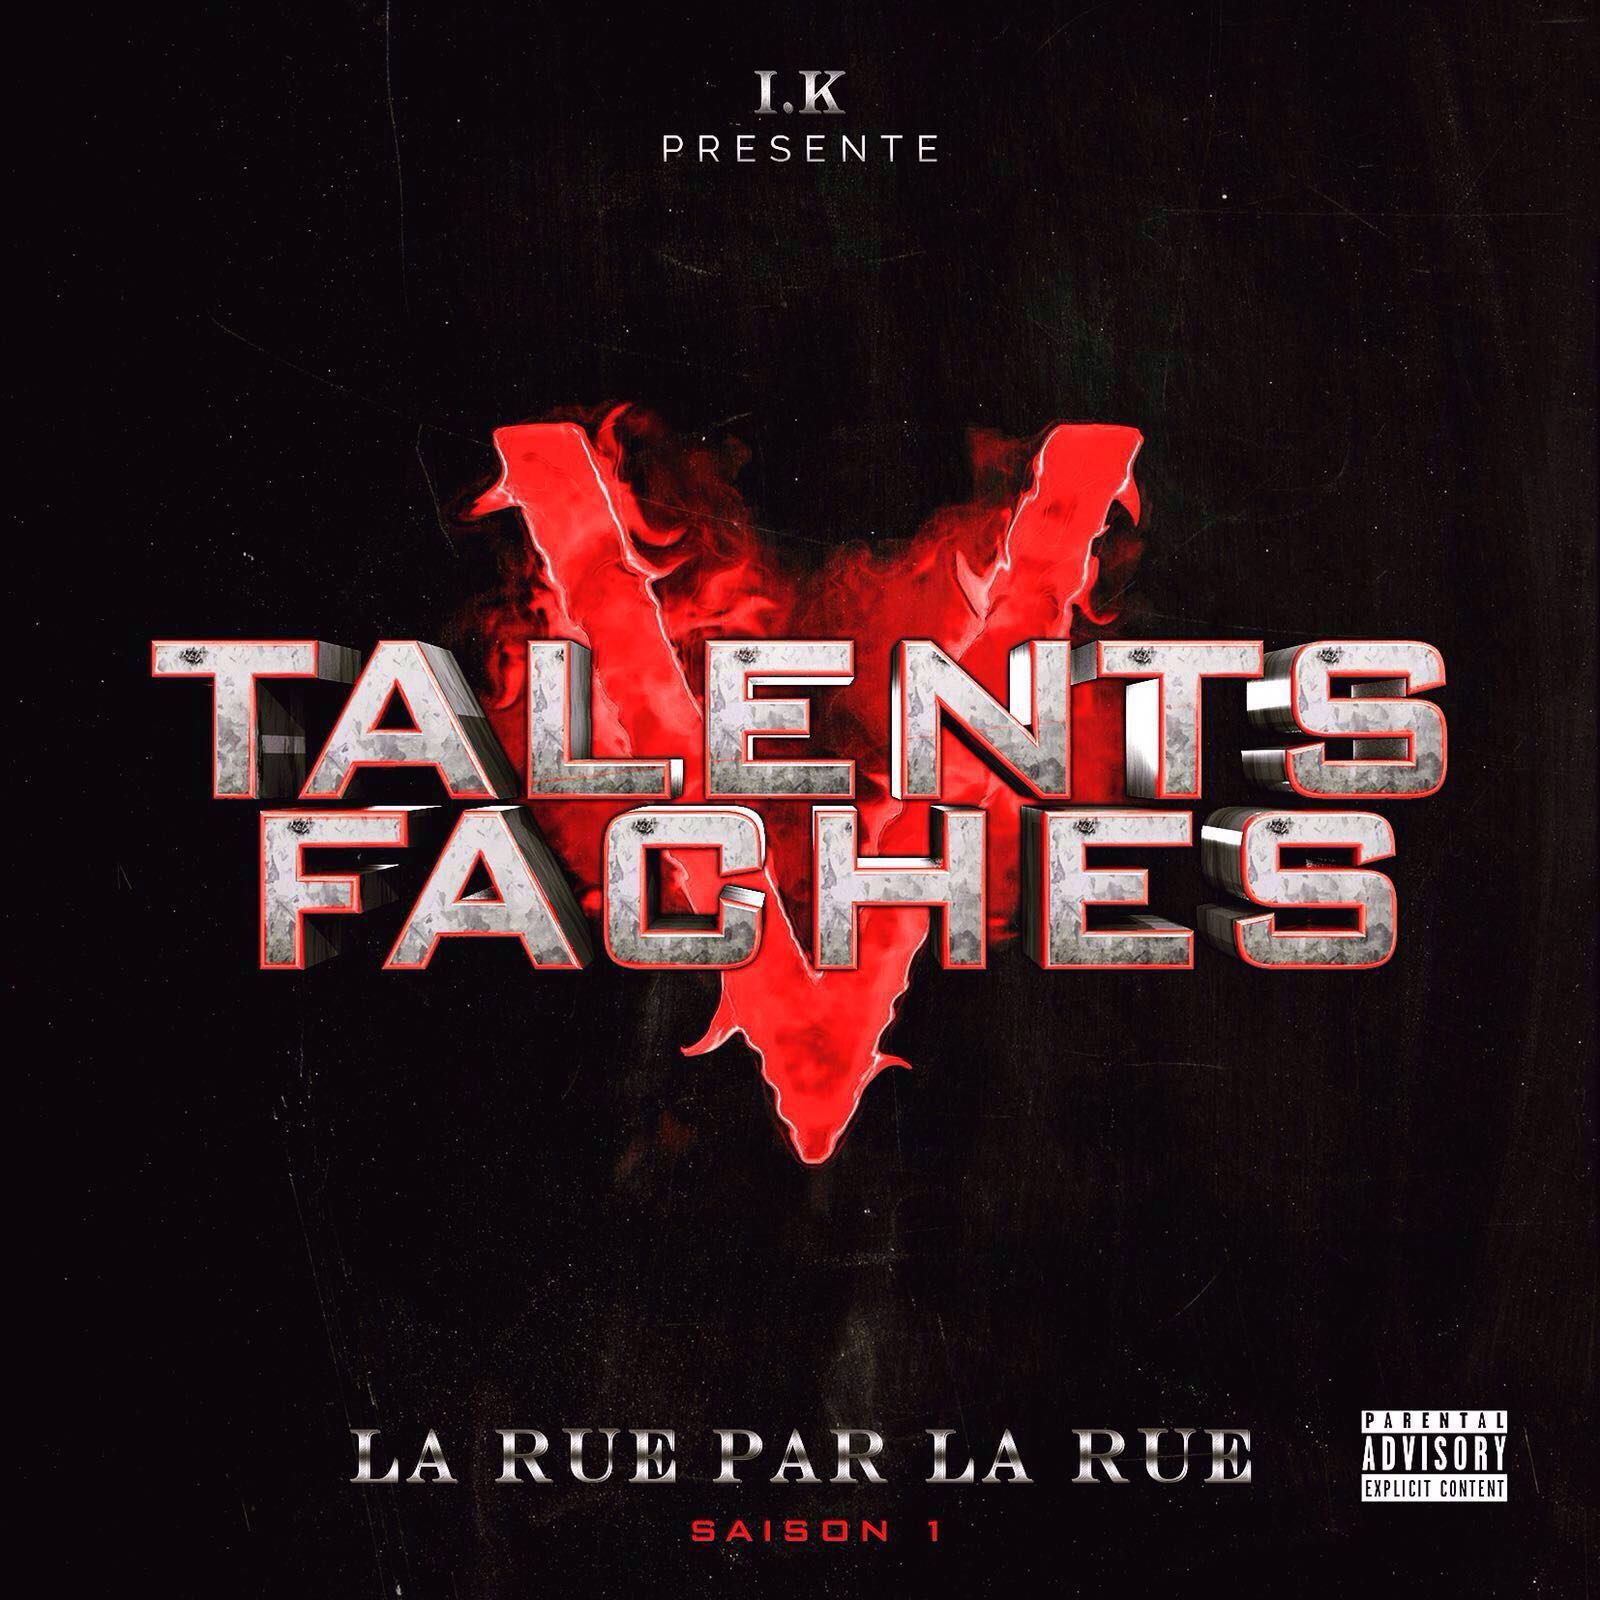 TalentsFachesV-Cover JustMusic.fr